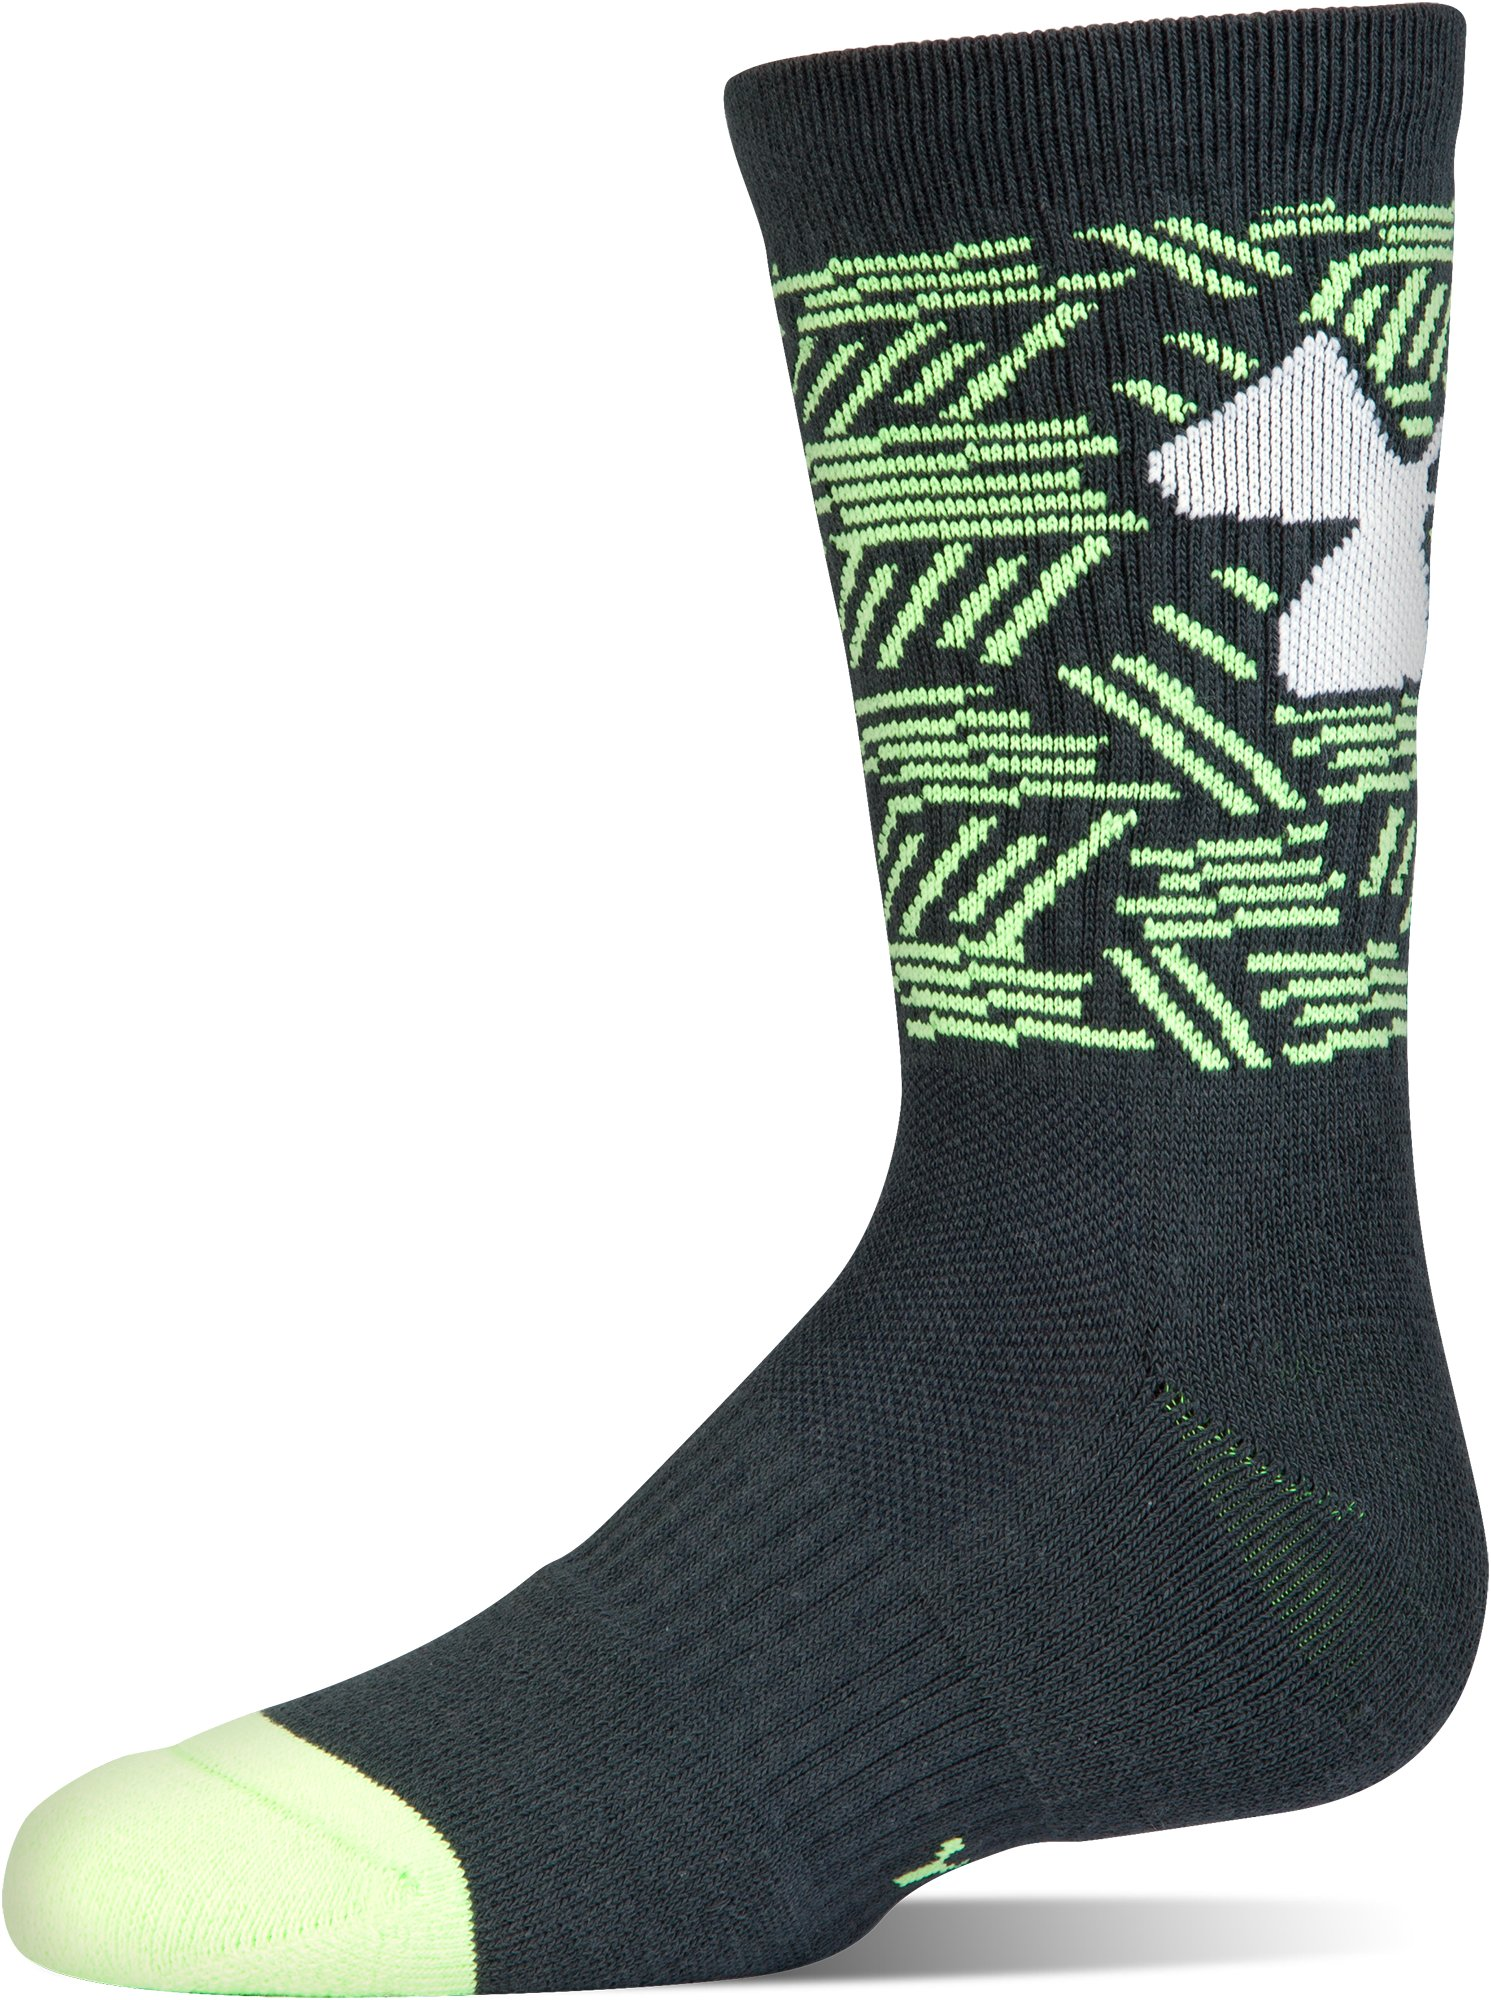 Boys' SC30 Phenom 2.0 Crew Socks – 3-Pack, STEALTH GRAY, undefined